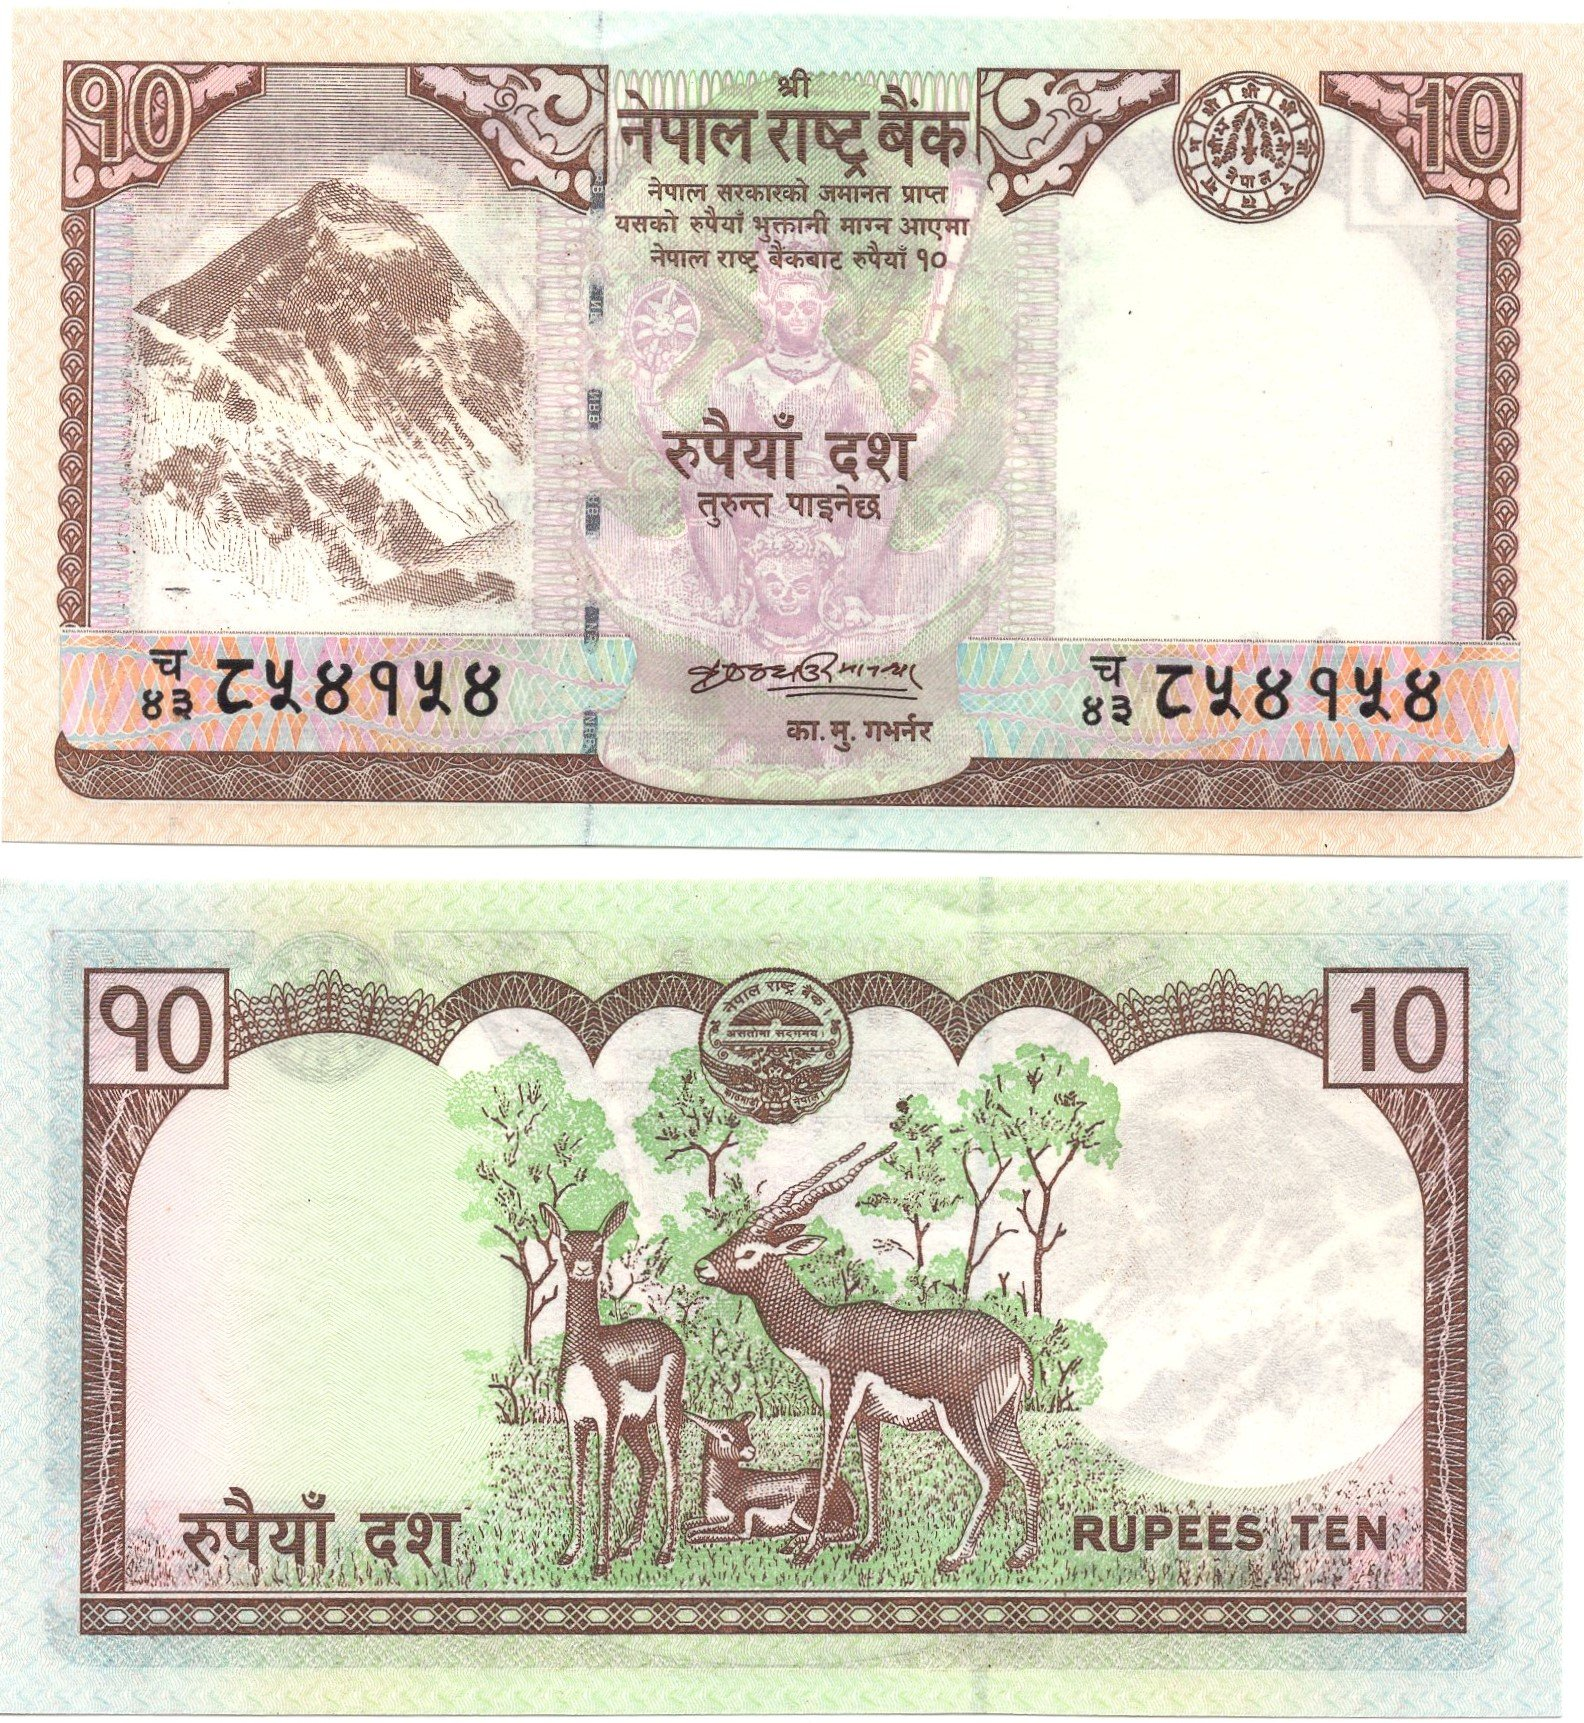 Nepal 10 rupees 2012 banknote for sale